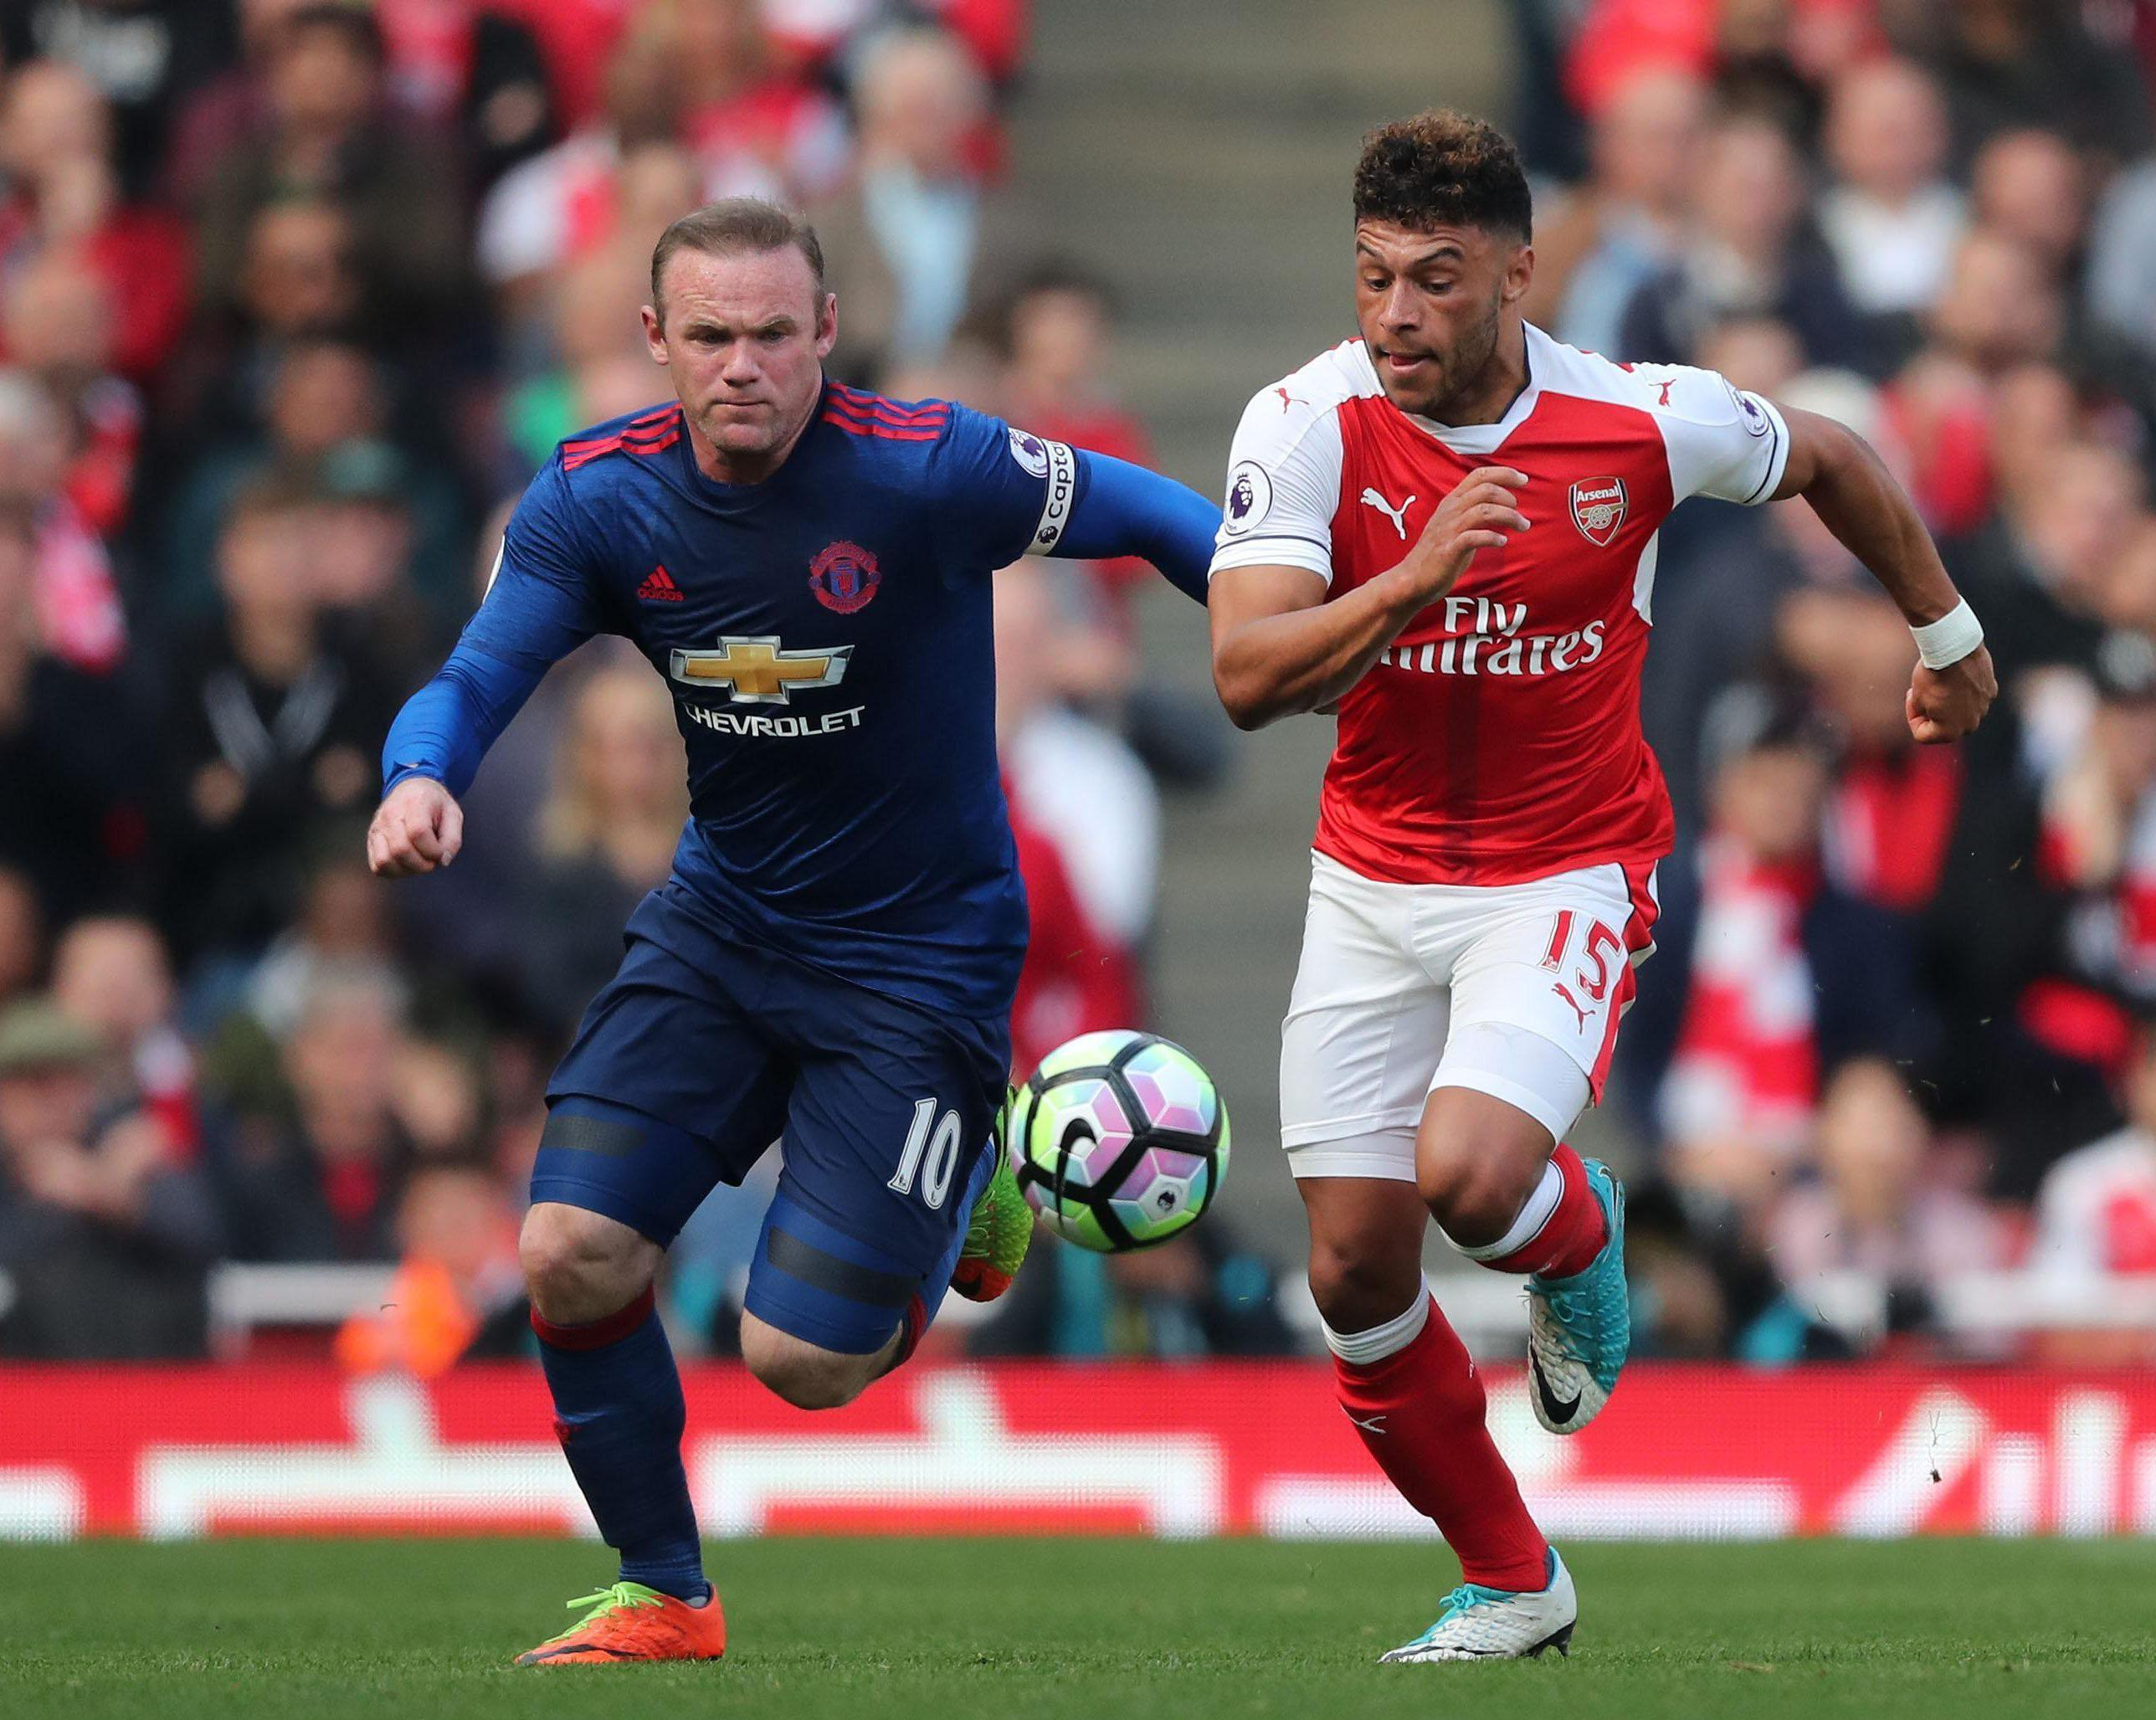 Alex Oxlade-Chamberlain was too agile for the ageing Wayne Rooney